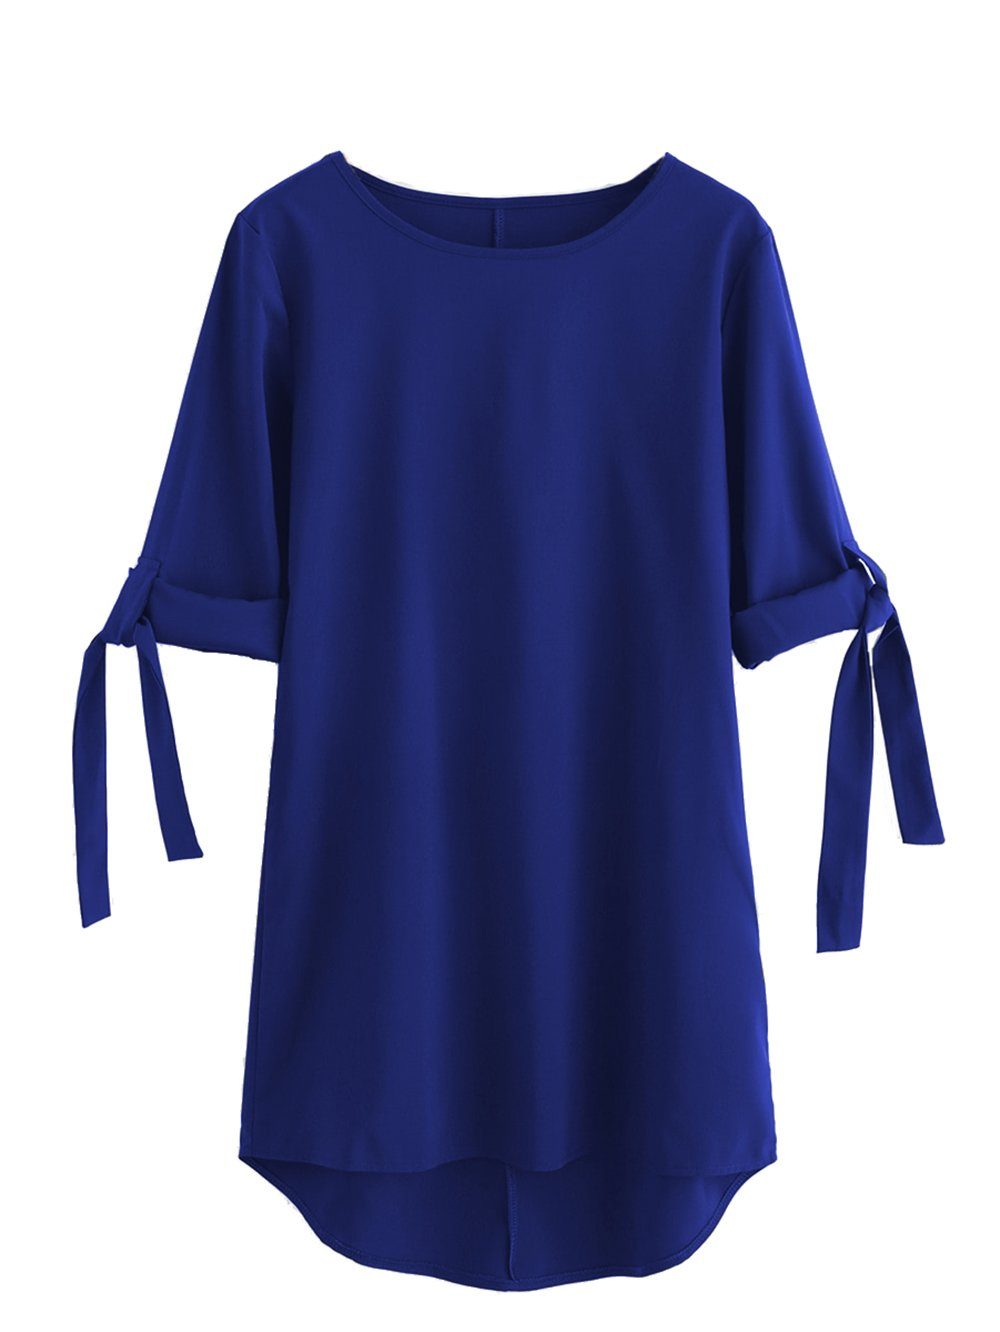 Available at Amazon: Milumia Women's Rolled Sleeve Tie Dip Hem Shift Dress Medium Royal Blue